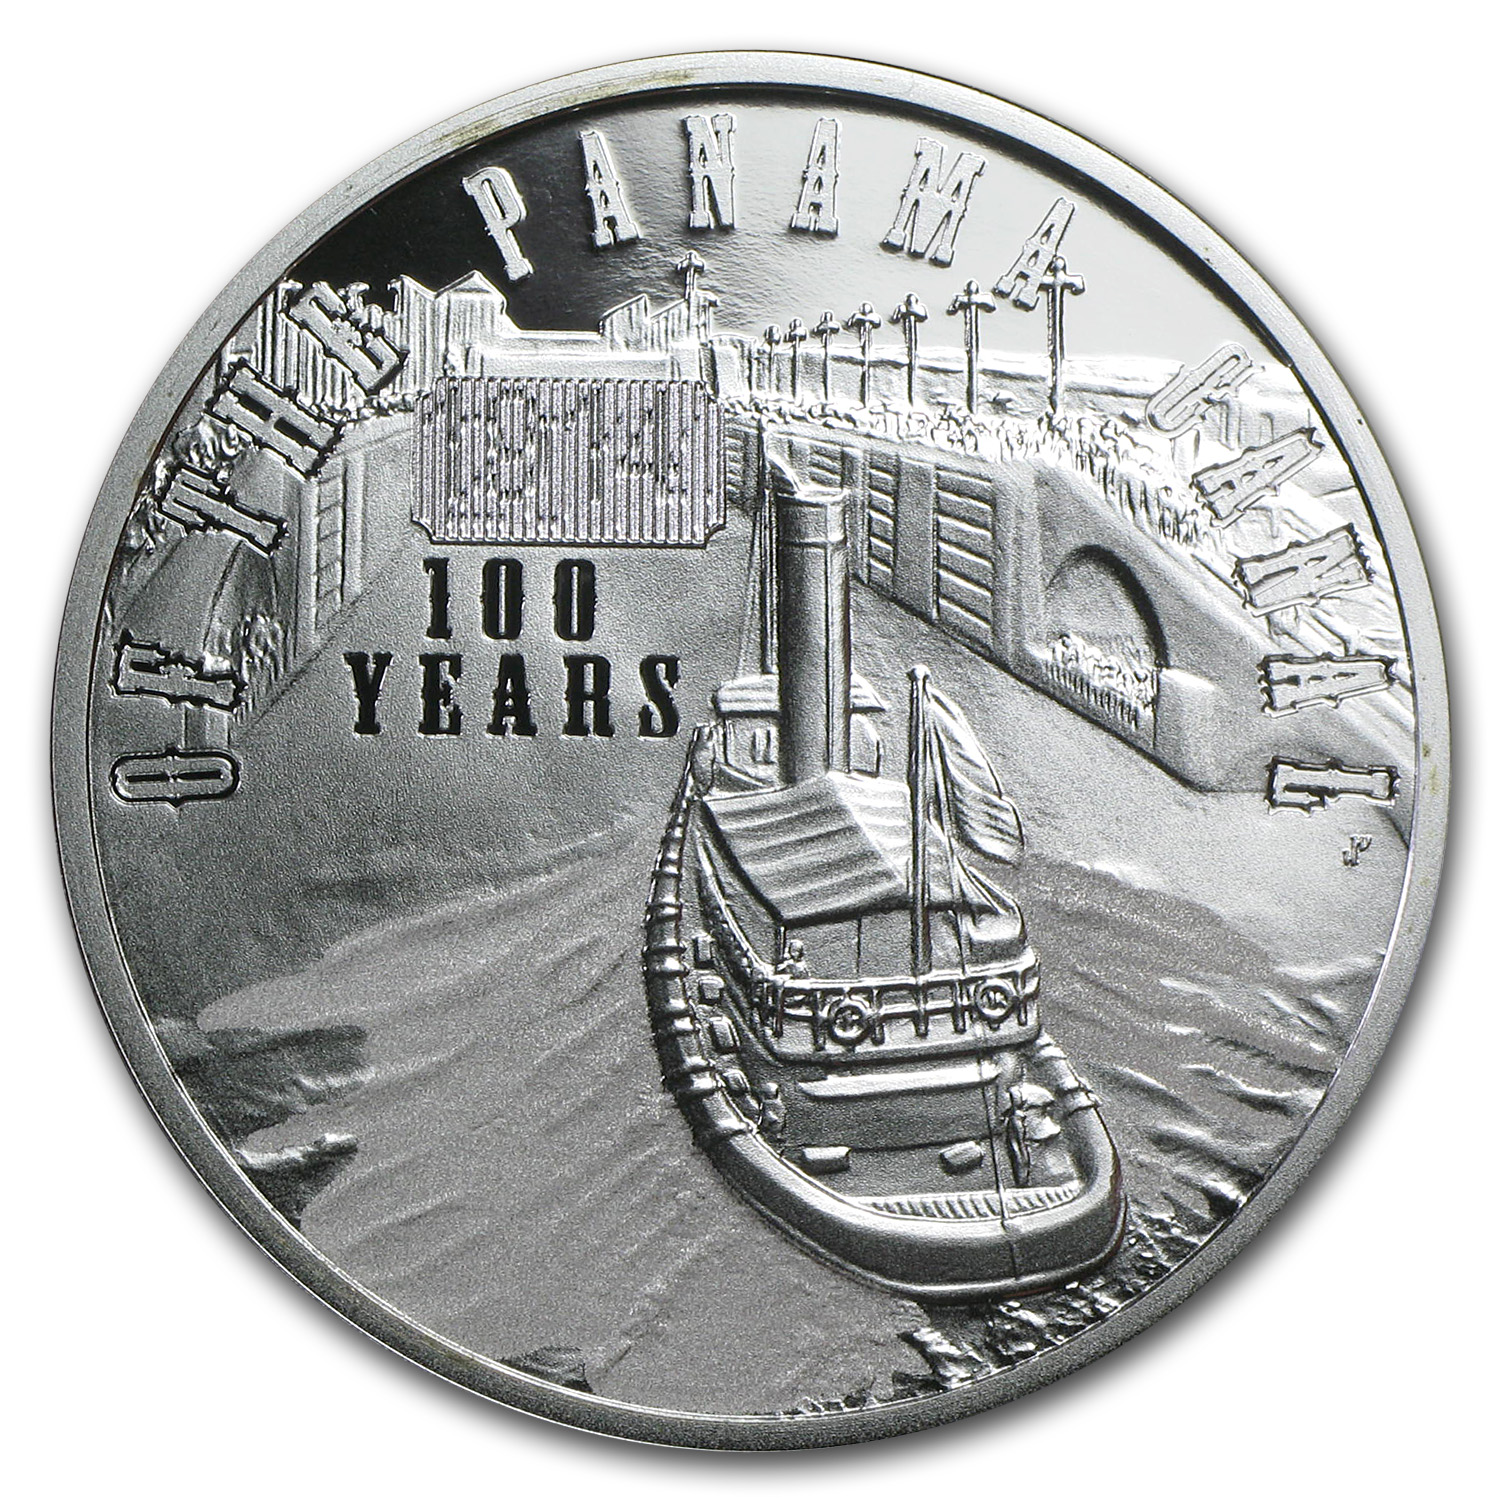 Niue 2014 Silver 100th Anniversary of the Panama Canal Proof